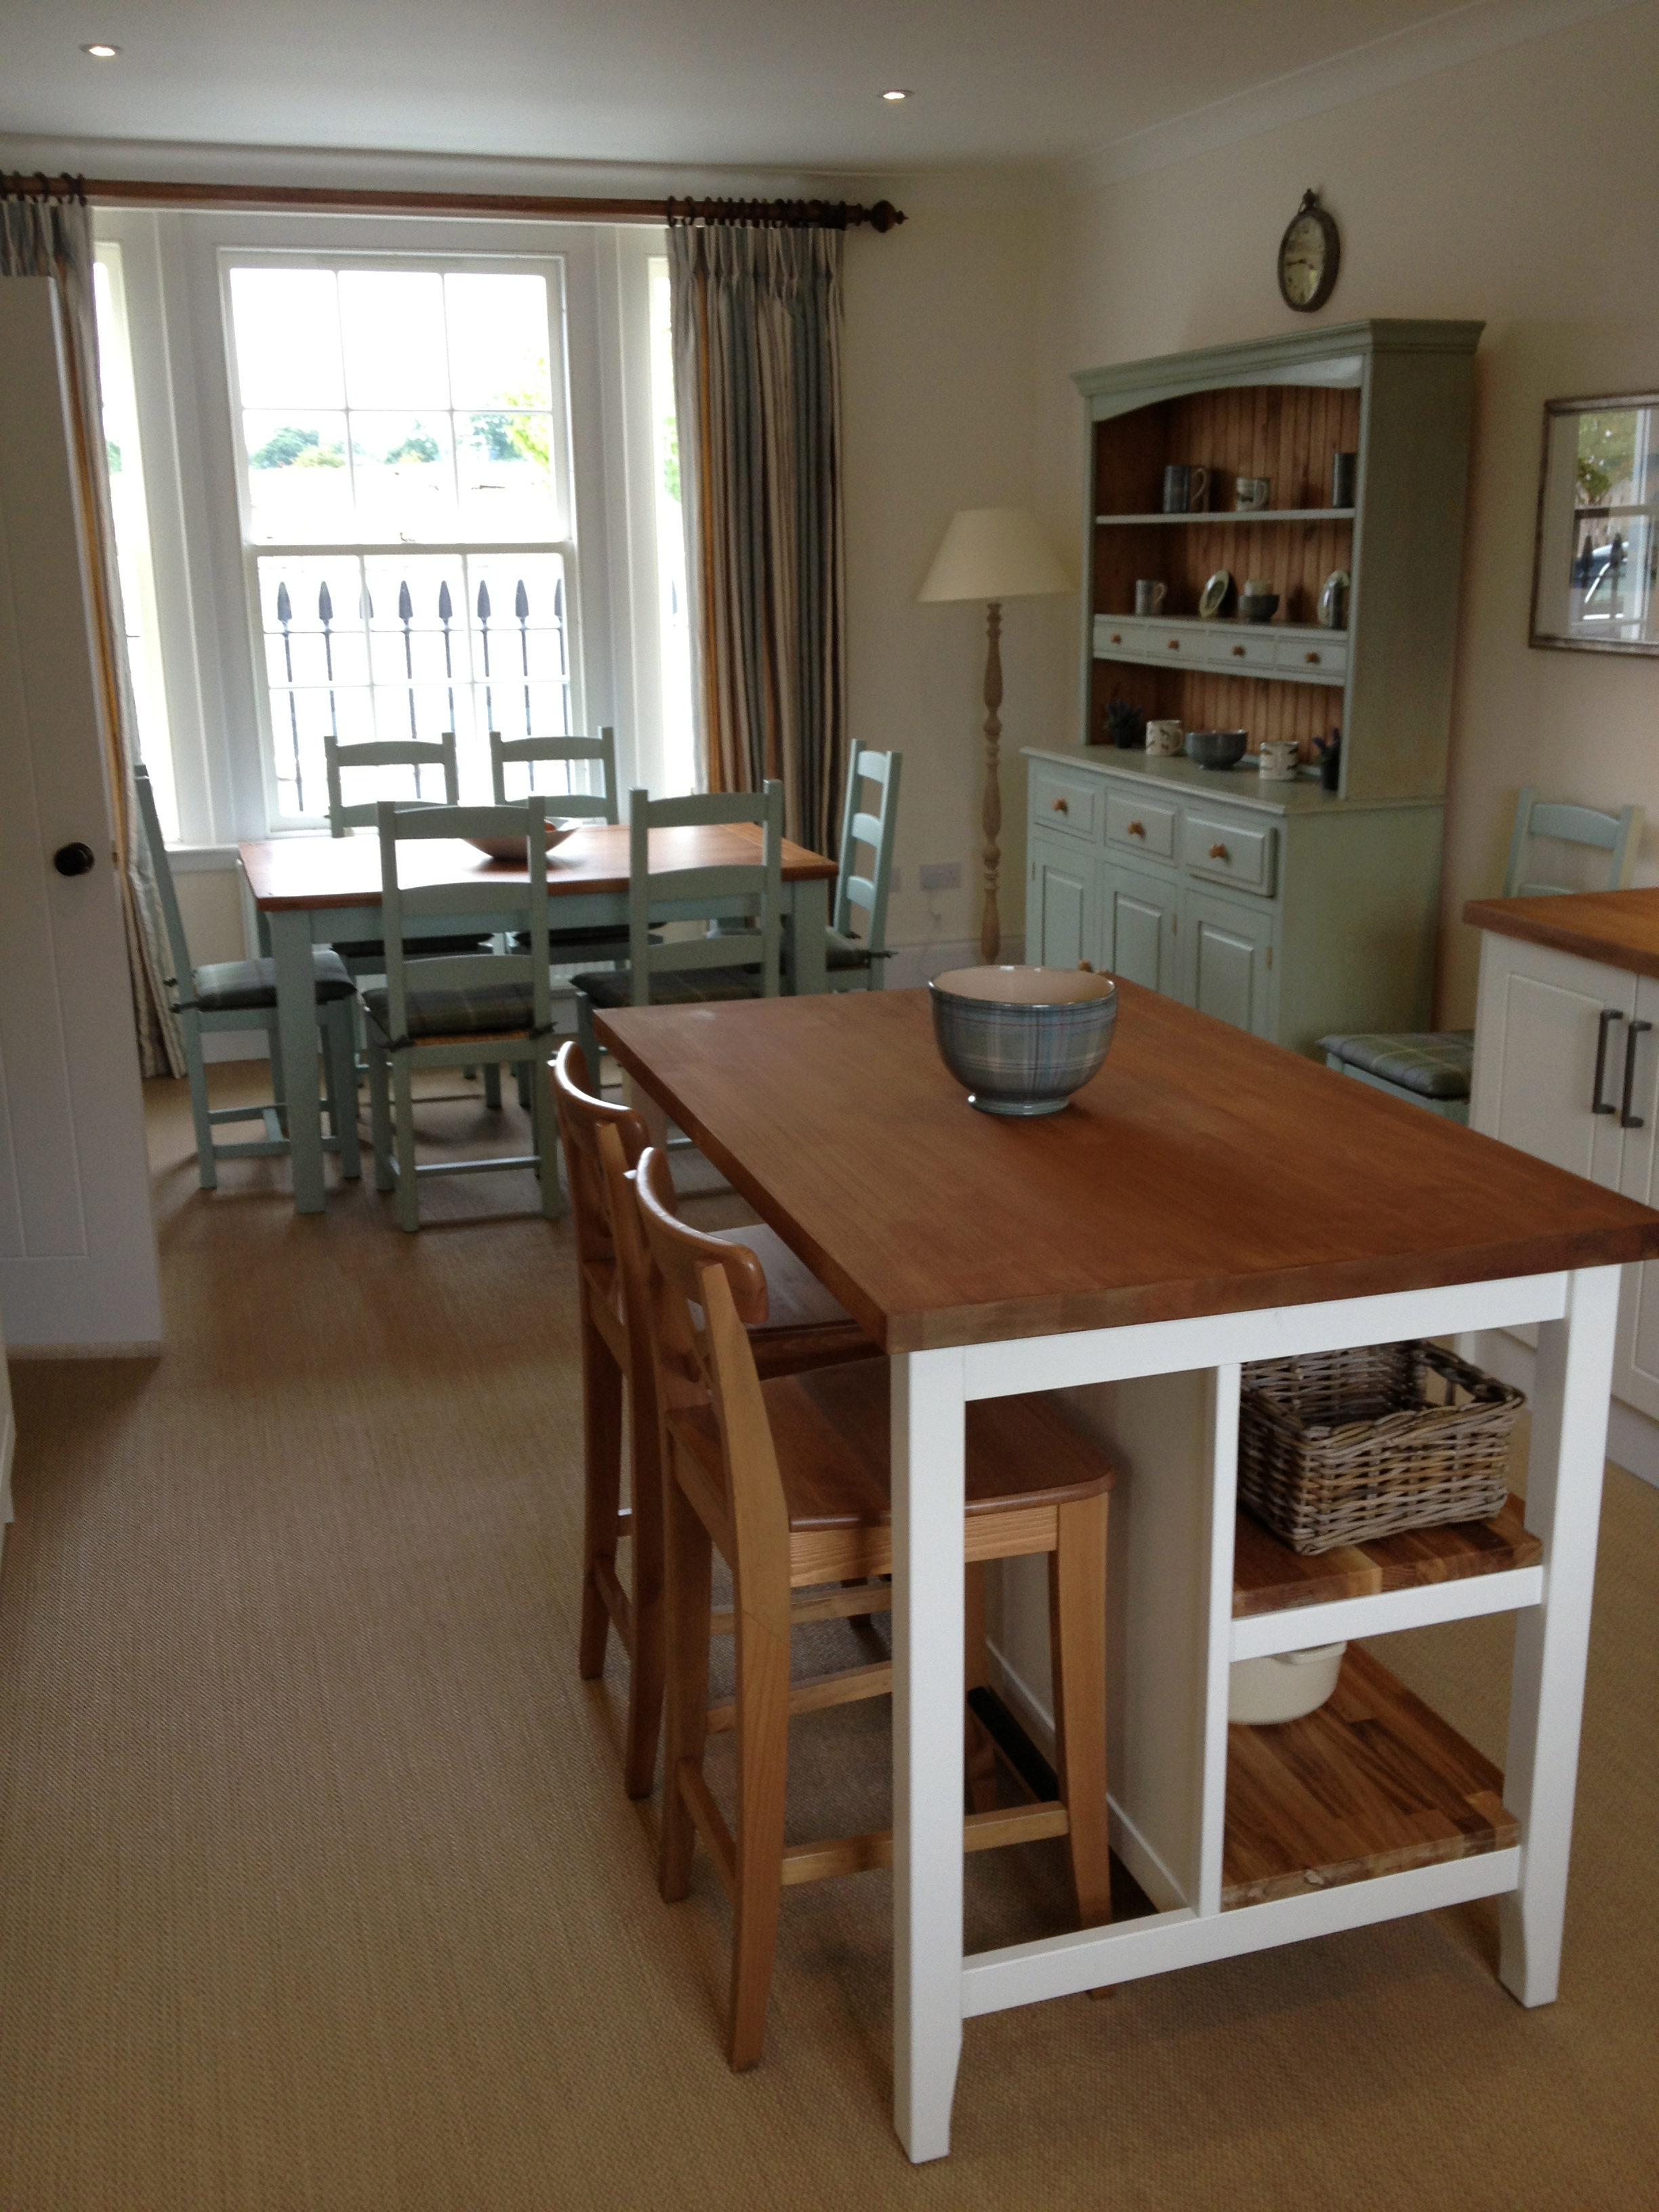 KIRK HOUSE, Knockroon - Kitchen Worktop + Dining